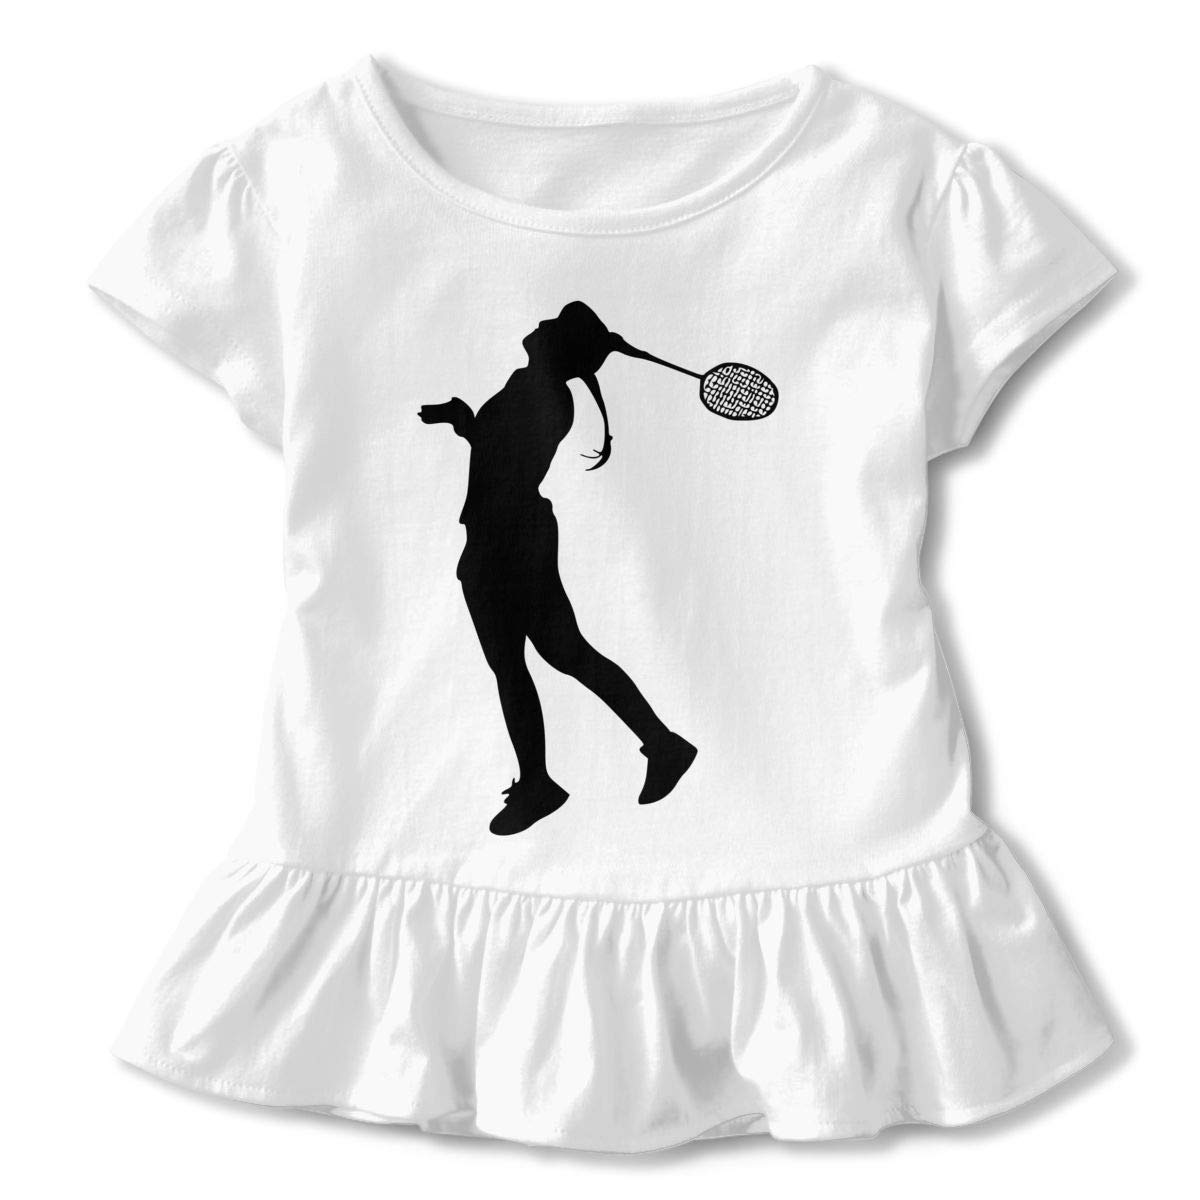 Badminton Silhouette Shirt Printed Toddler Girls Flounced T Shirts Clothes for 2-6T Baby Girls